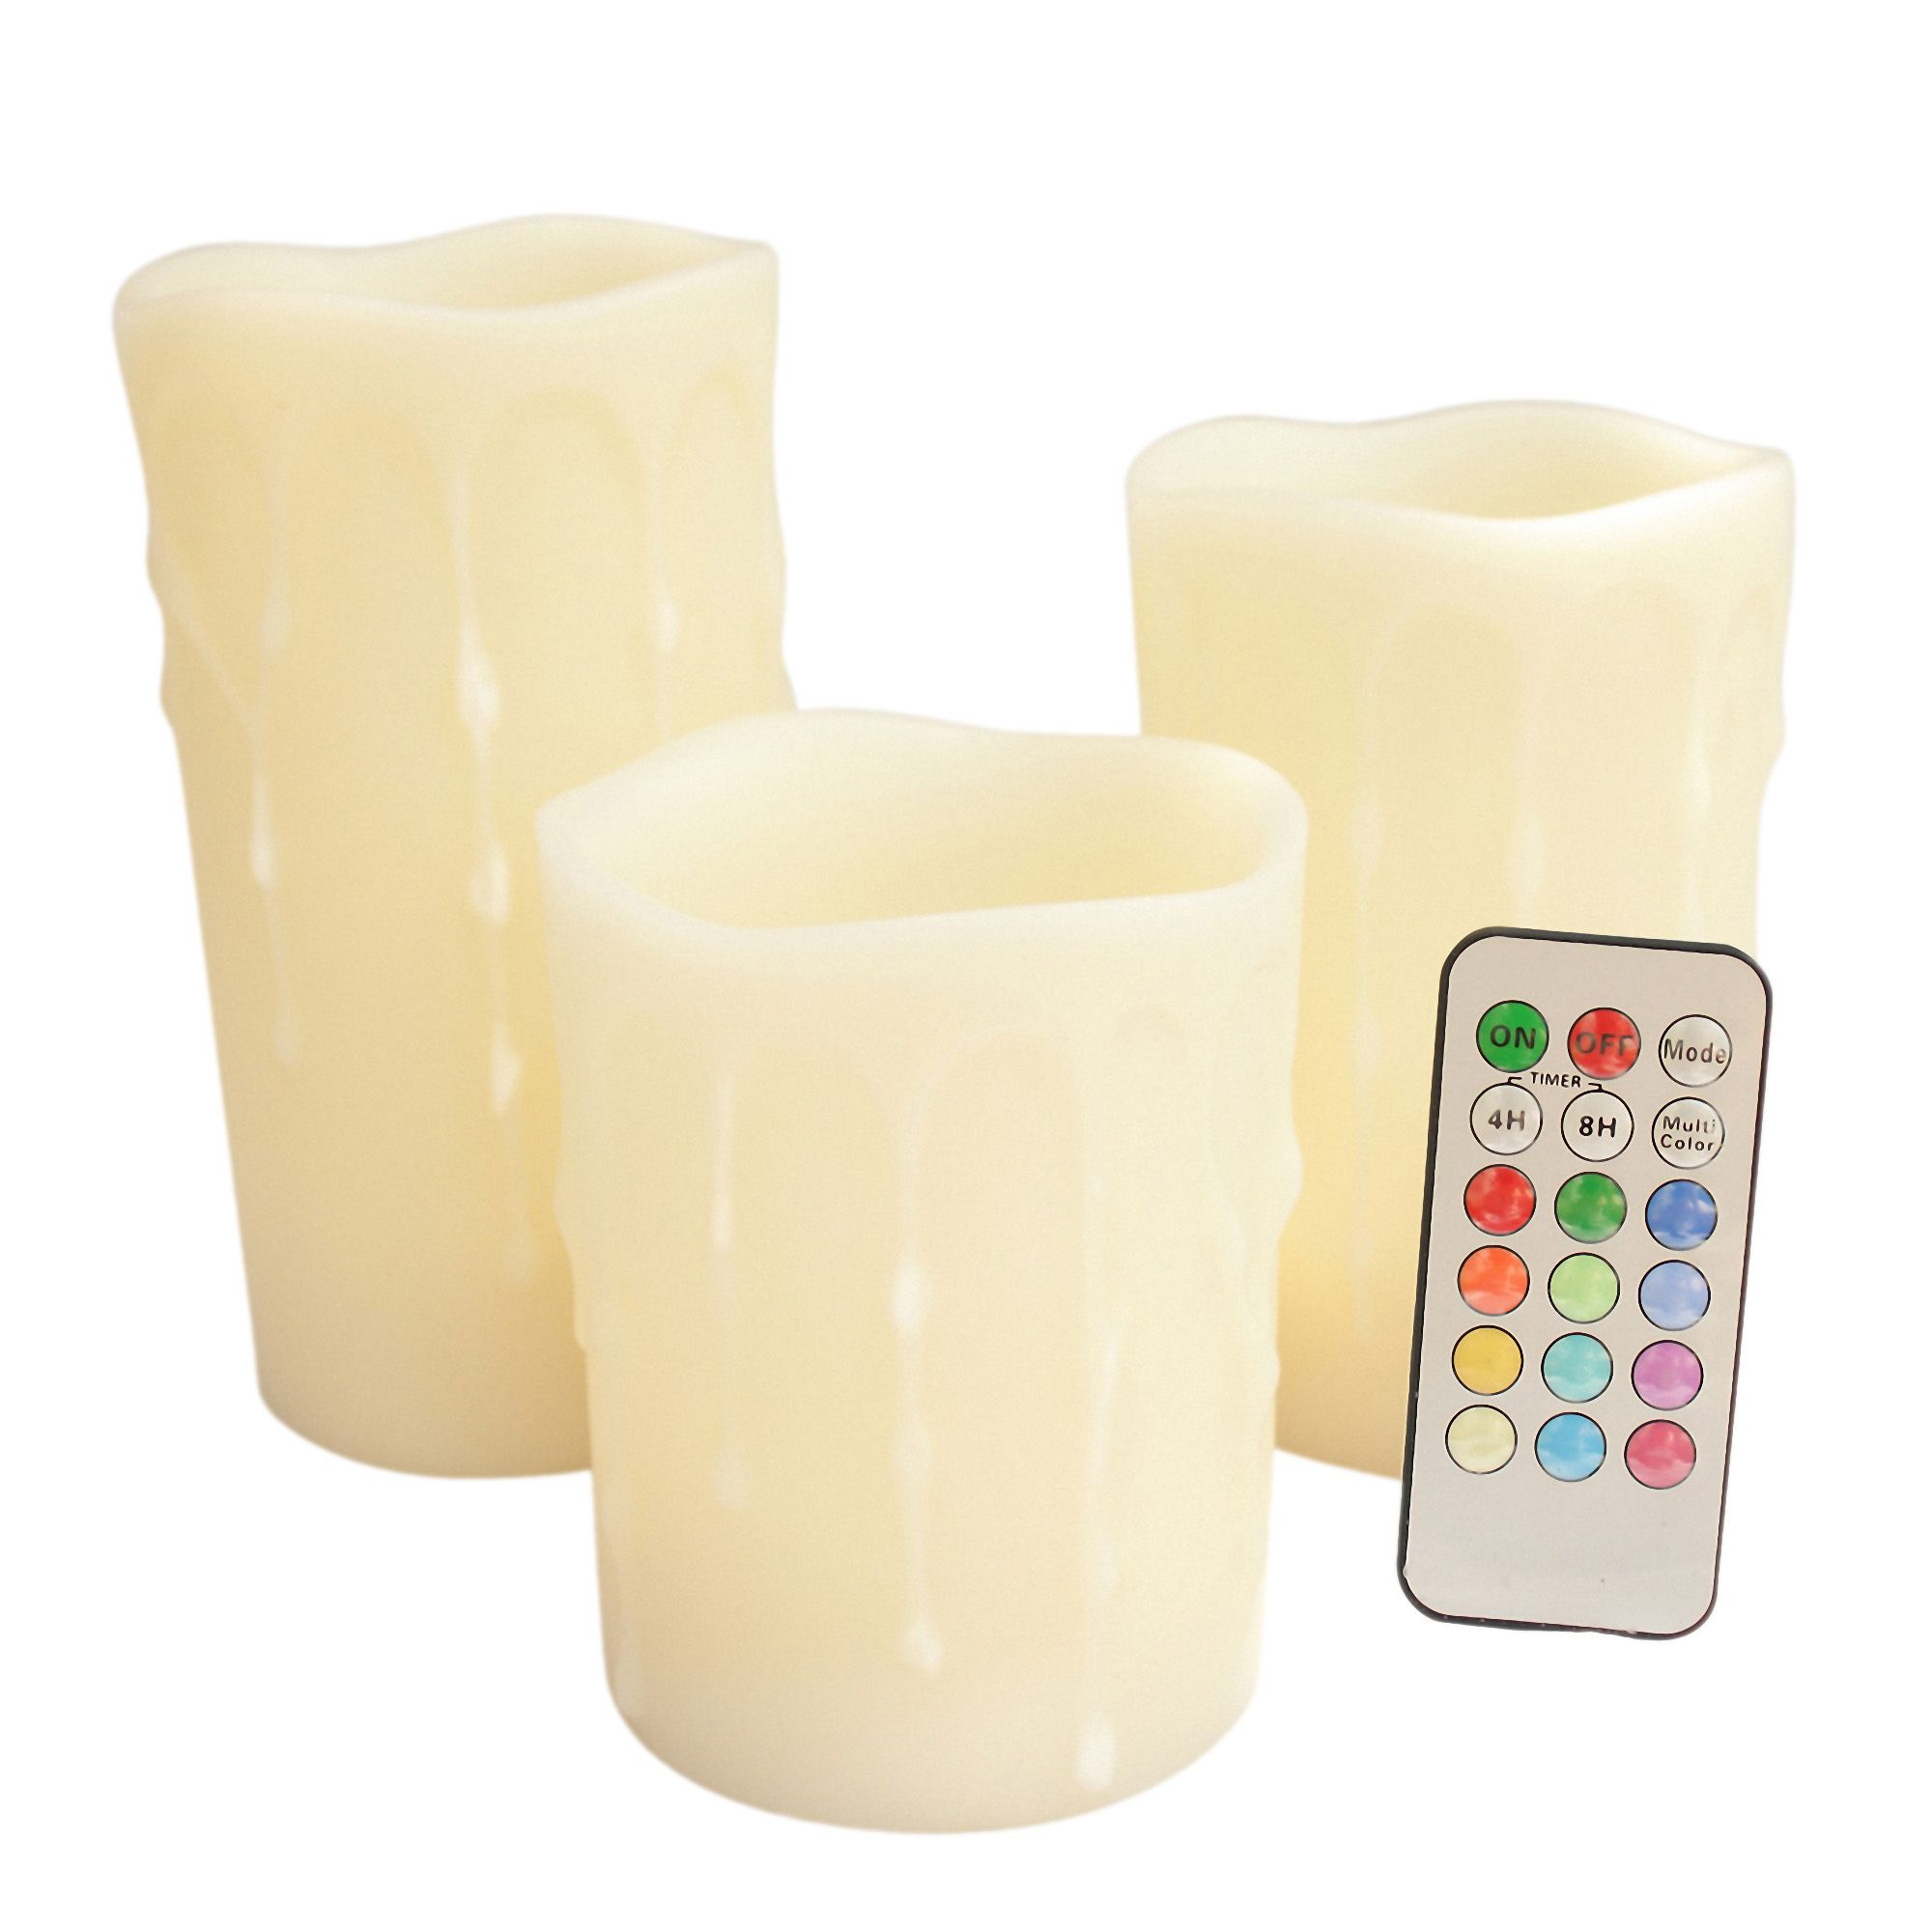 Round Melted Edge Wax Drip Effect Multi Color Flameless Wax Pillar Candles with Remote - Set of 3